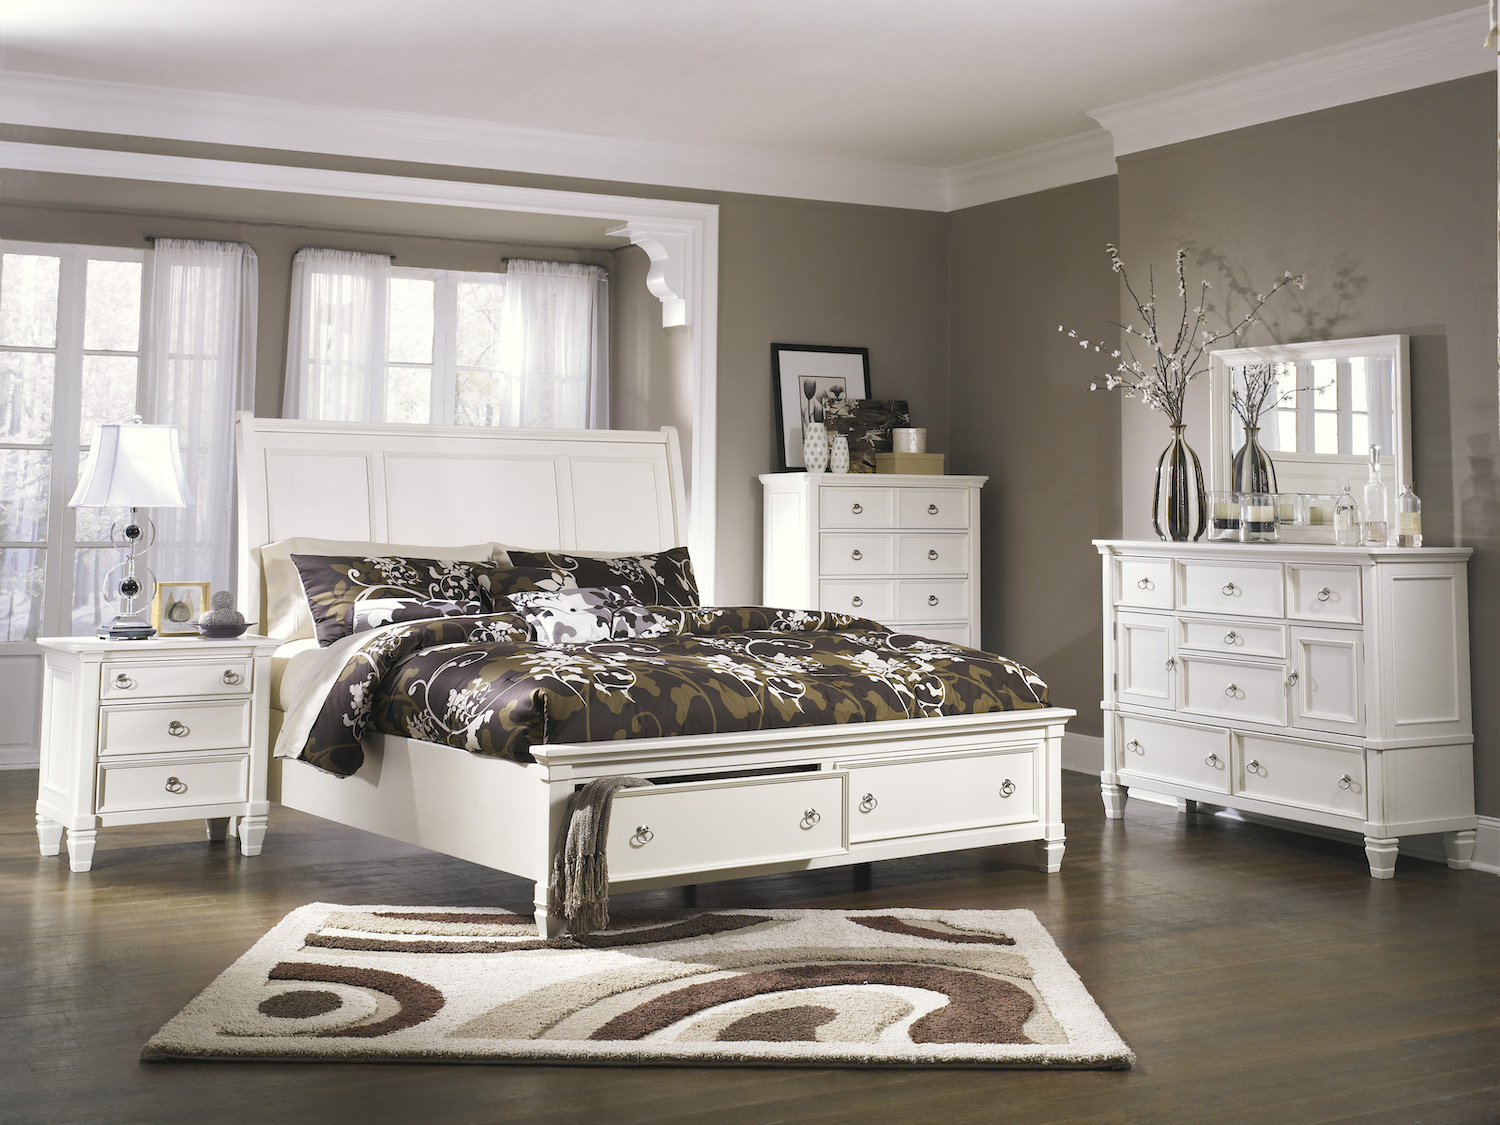 Prentice 6 pc Bedroom Set, B672, Bedroom Sets by Midha Furniture to Brampton, Mississauga, Etobicoke, Toronto, Scraborough, Caledon, Oakville, Markham, Ajax, Pickering, Oshawa, Richmondhill, Kitchener, Hamilton and GTA area